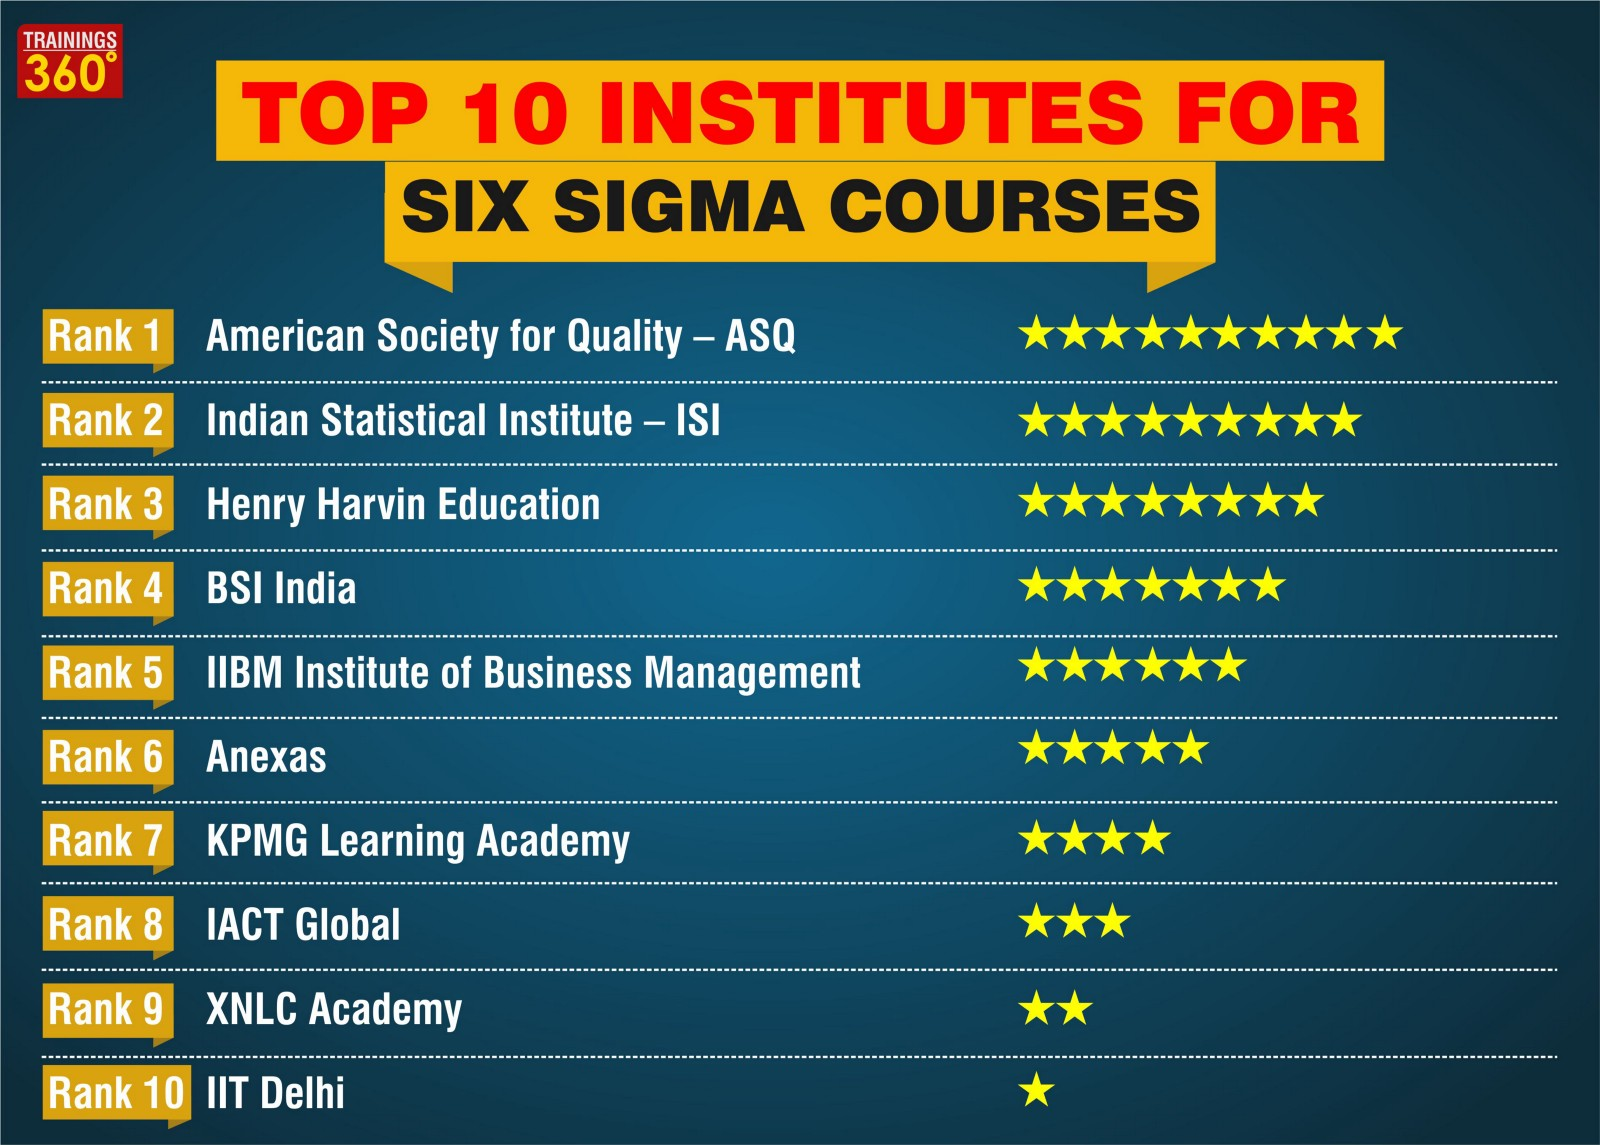 Top 10 Institutes For Six Sigma Courses Trainings360 Medium